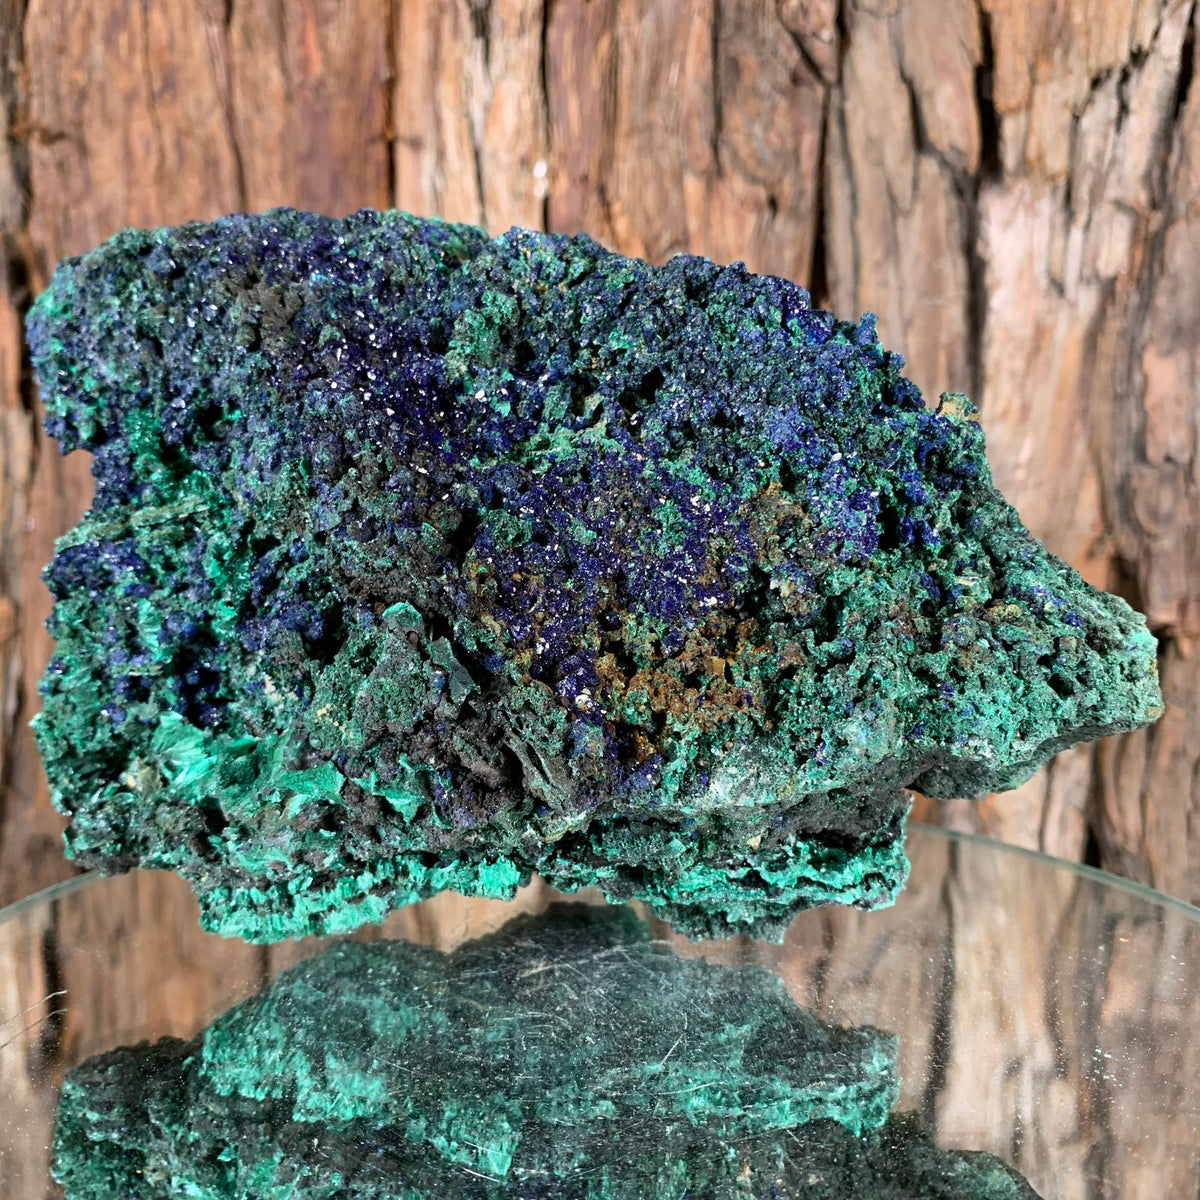 17.5cm 1.08kg Azurite and Malachite from Sepon Mine, Laos